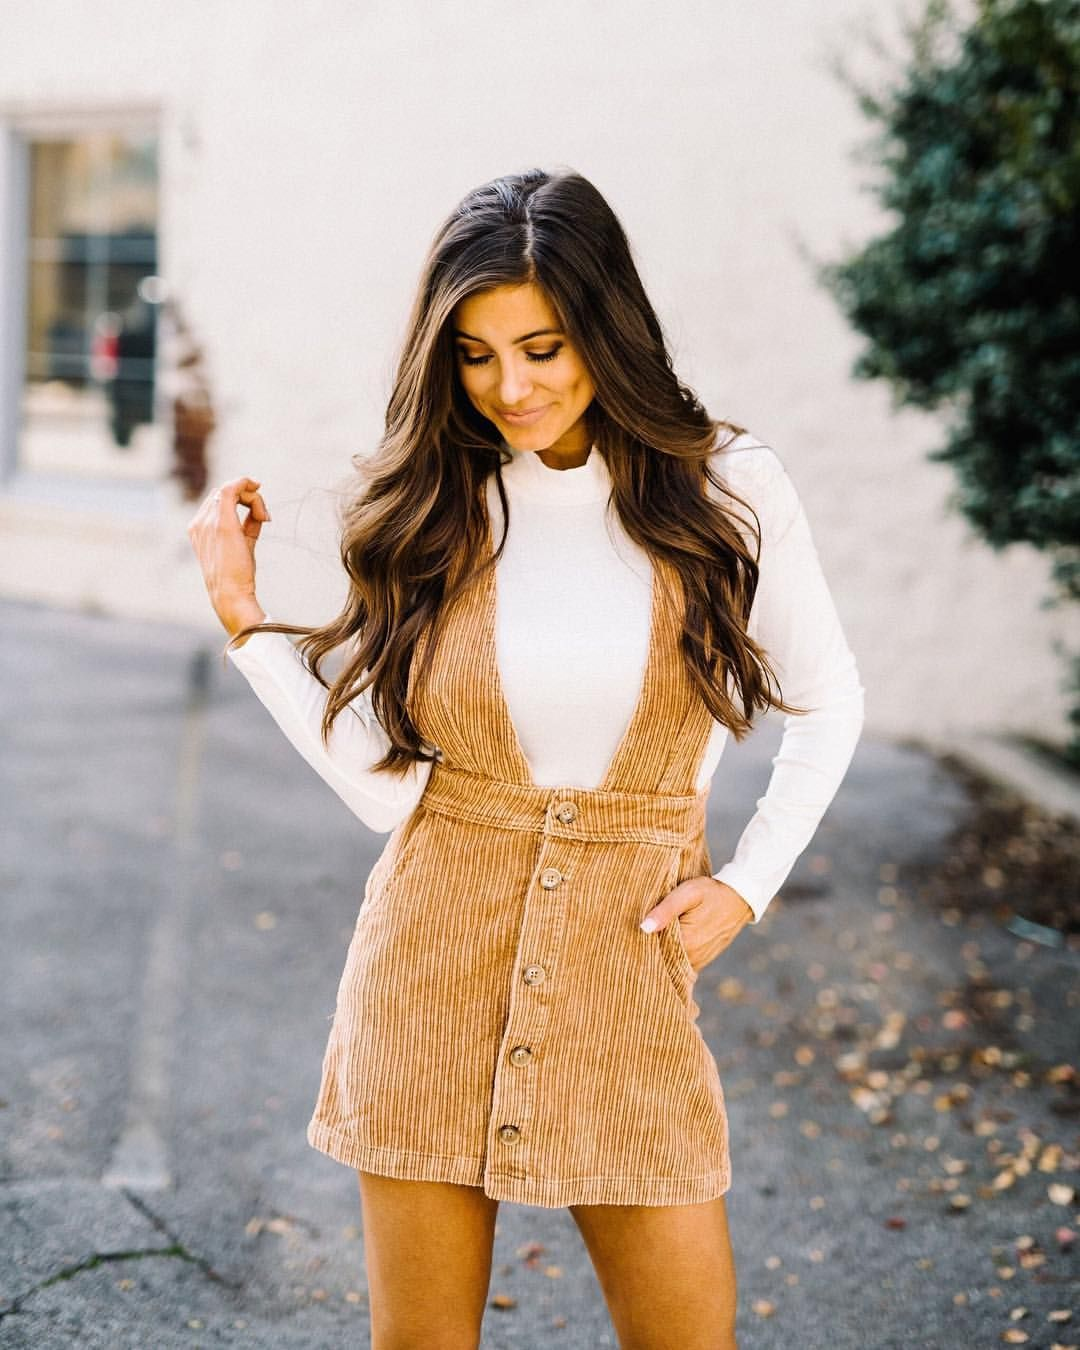 These Three Boutique On Instagram New We Re Obsessed With This Pocketed Corduroy Dress Launchin Corduroy Dress Outfit Corduroy Dress Maxi Dress Outfit Fall [ 1350 x 1080 Pixel ]